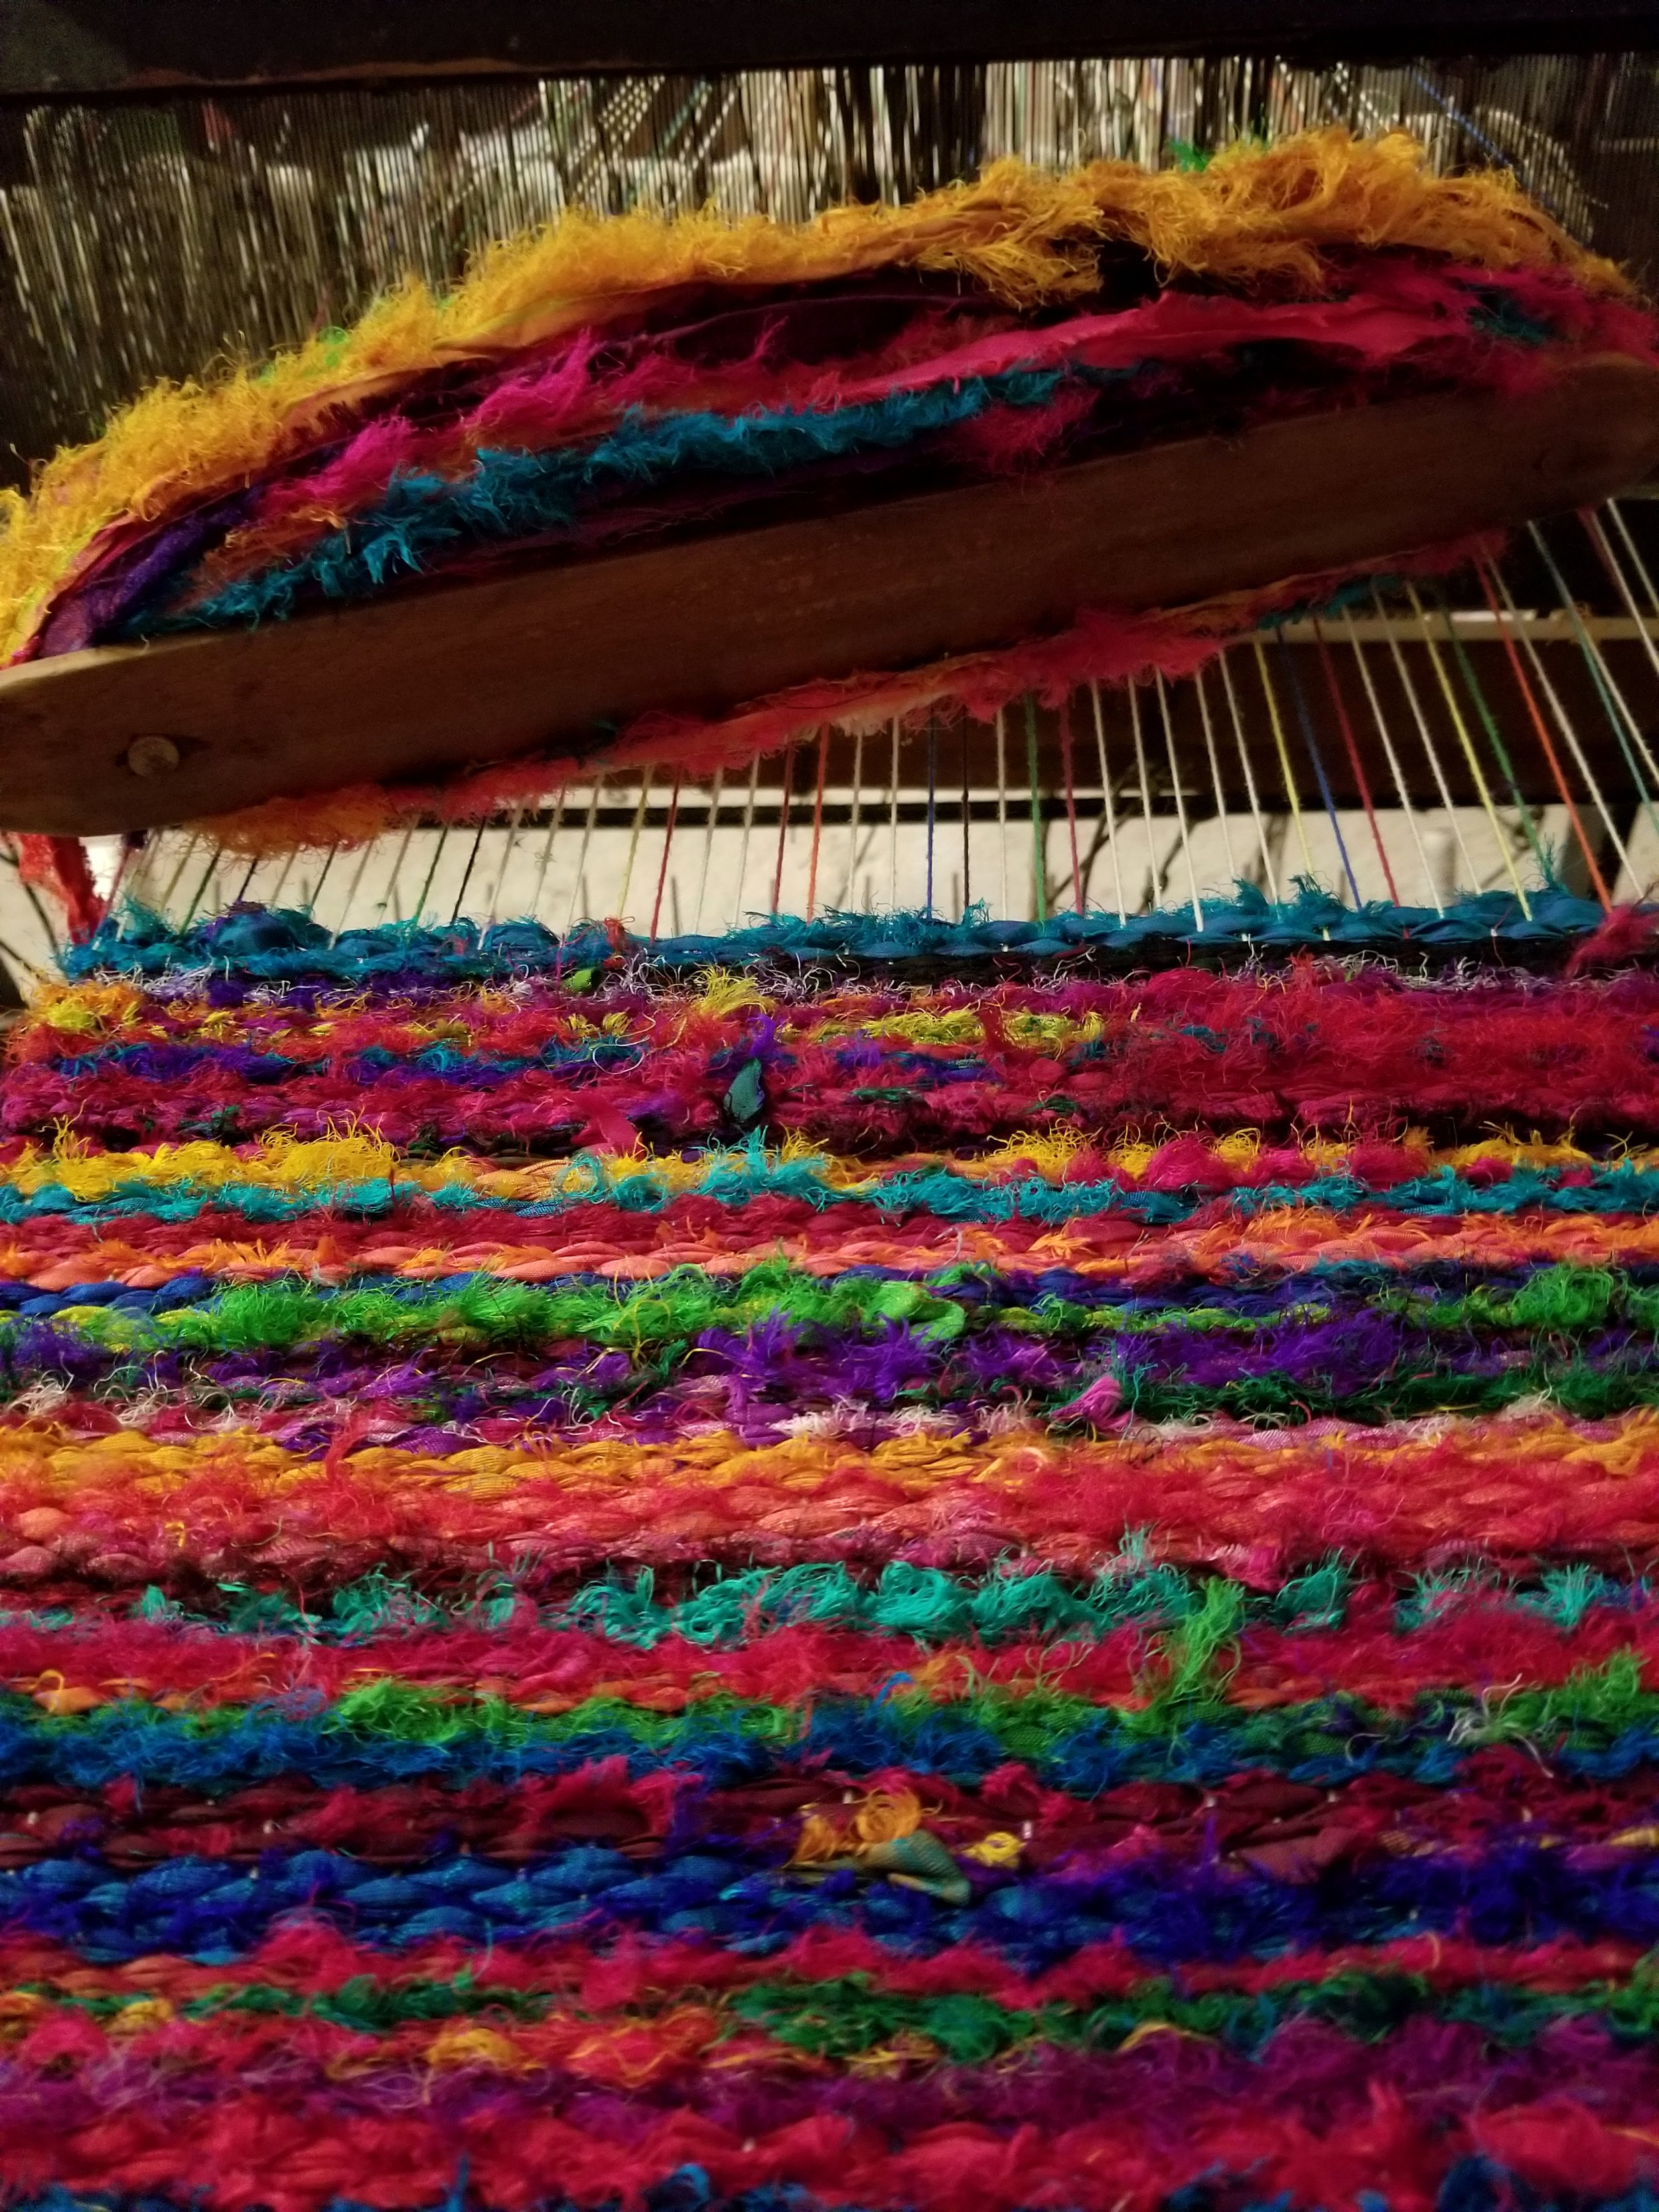 Sari Silk in the process of being woven on Lori's antique loom. WOW, look at that color!